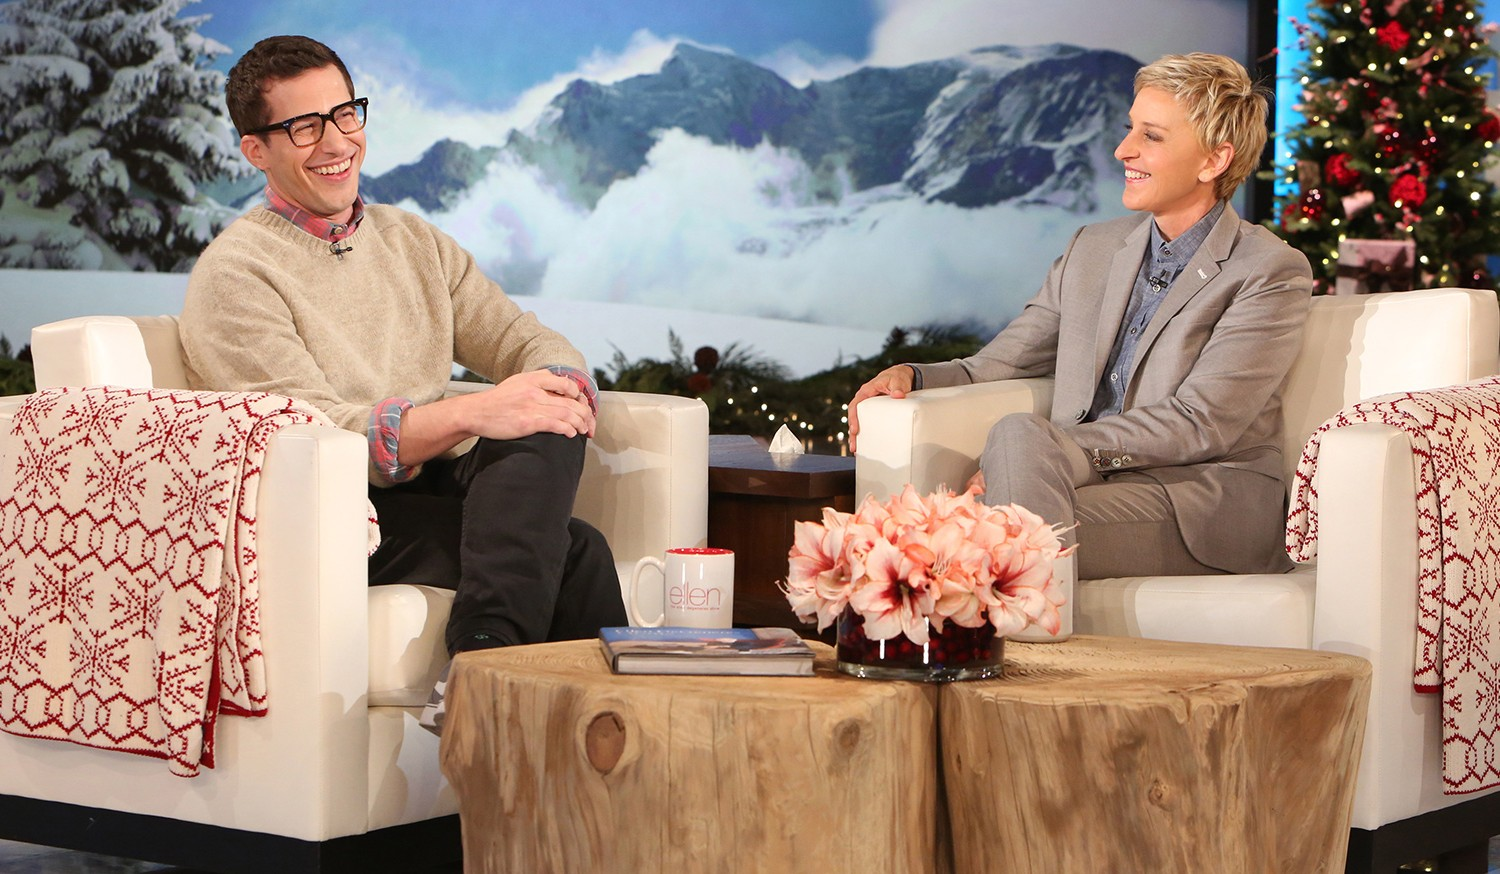 Andy Samberg Shares Funny Wedding Anniversary Gifts With Ellen